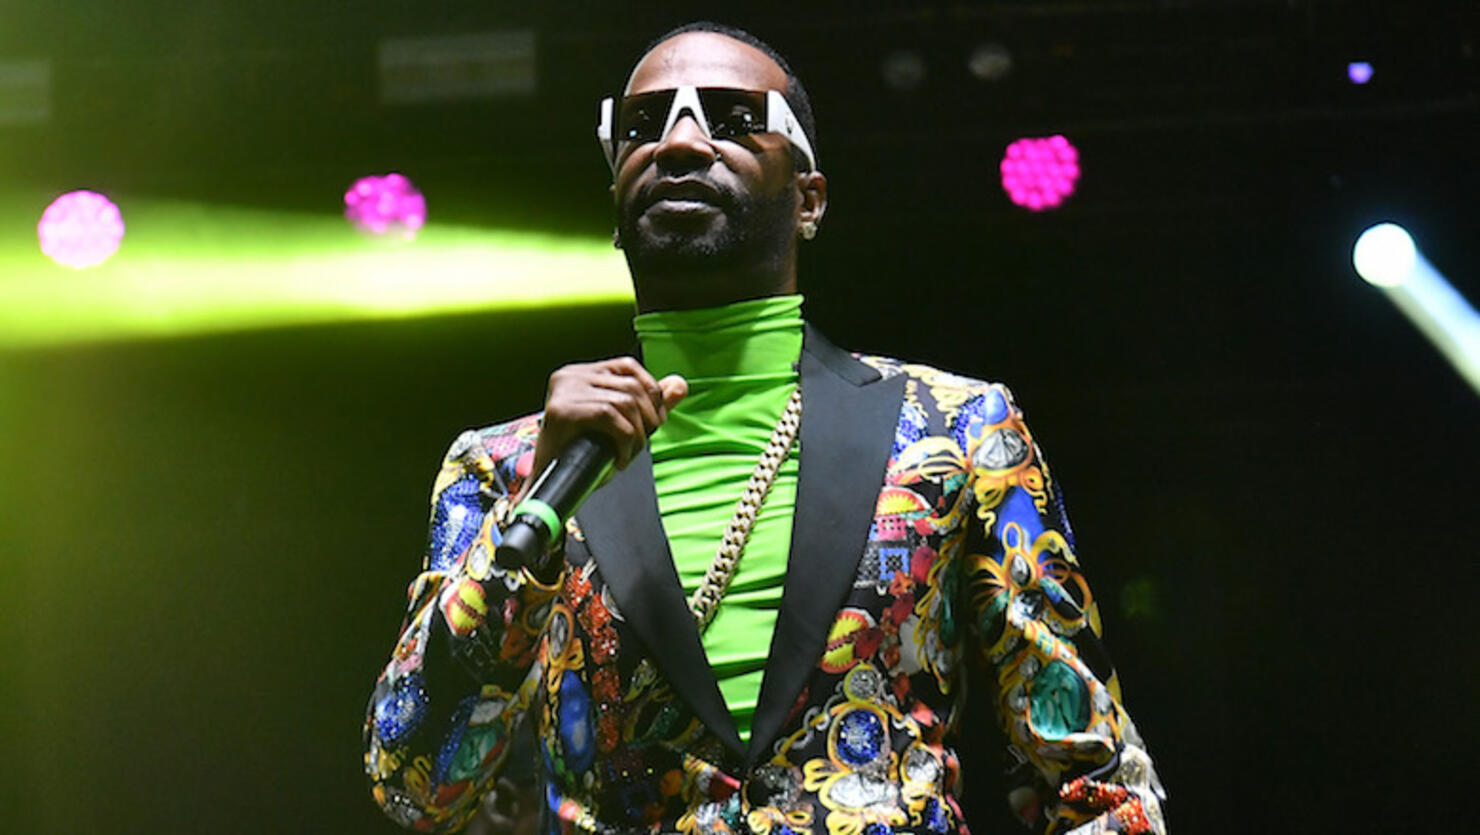 Juicy J Apologizes For His Role In Promoting Drug Use   iHeartRadio